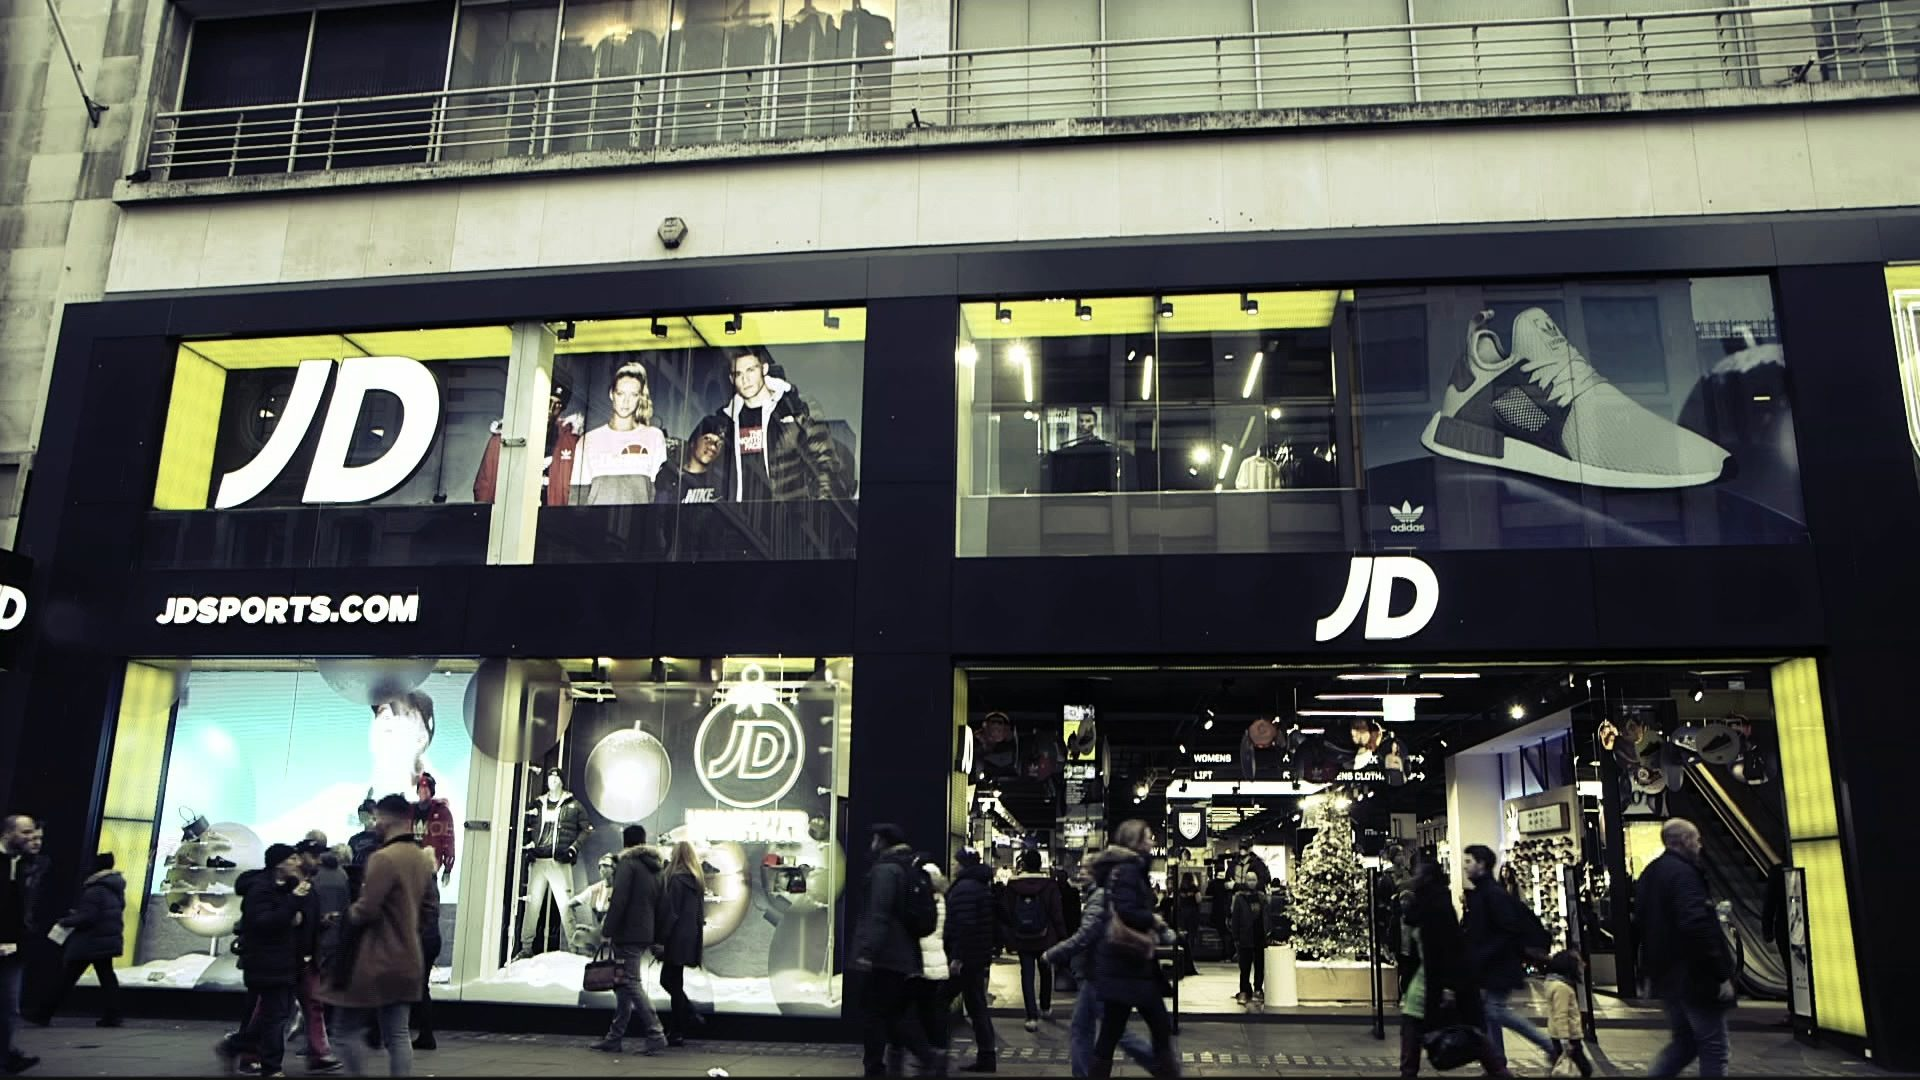 Jd Sports Jd Sports The 5bn Institution Dispatch Weekly